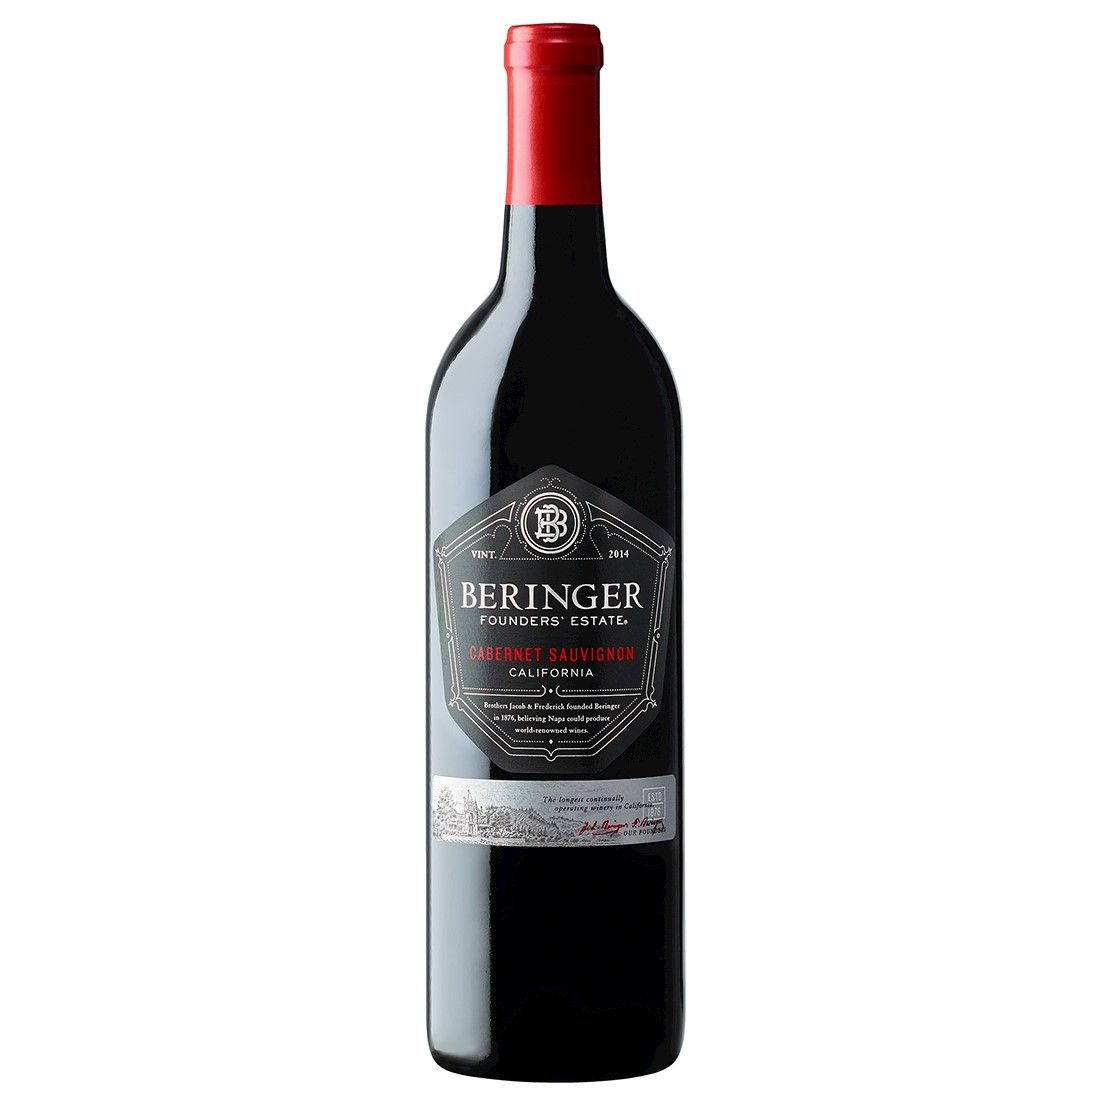 Vinho Californiano Beringer Founders Estate Cabernet Sauvignon 2016(750ml)